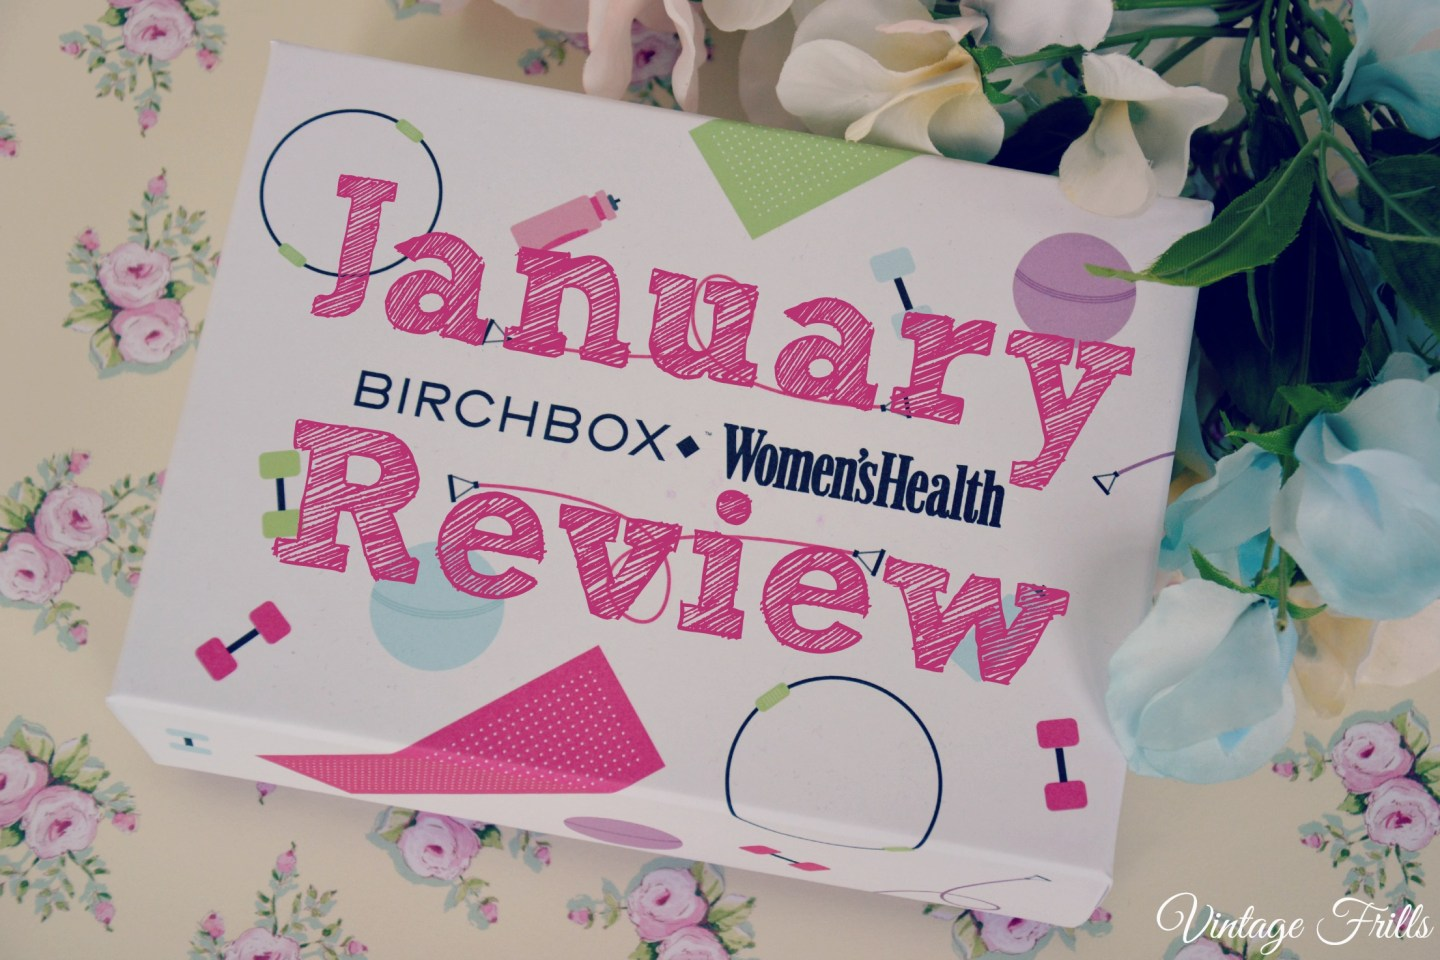 January 2015 Birchbox Review 1